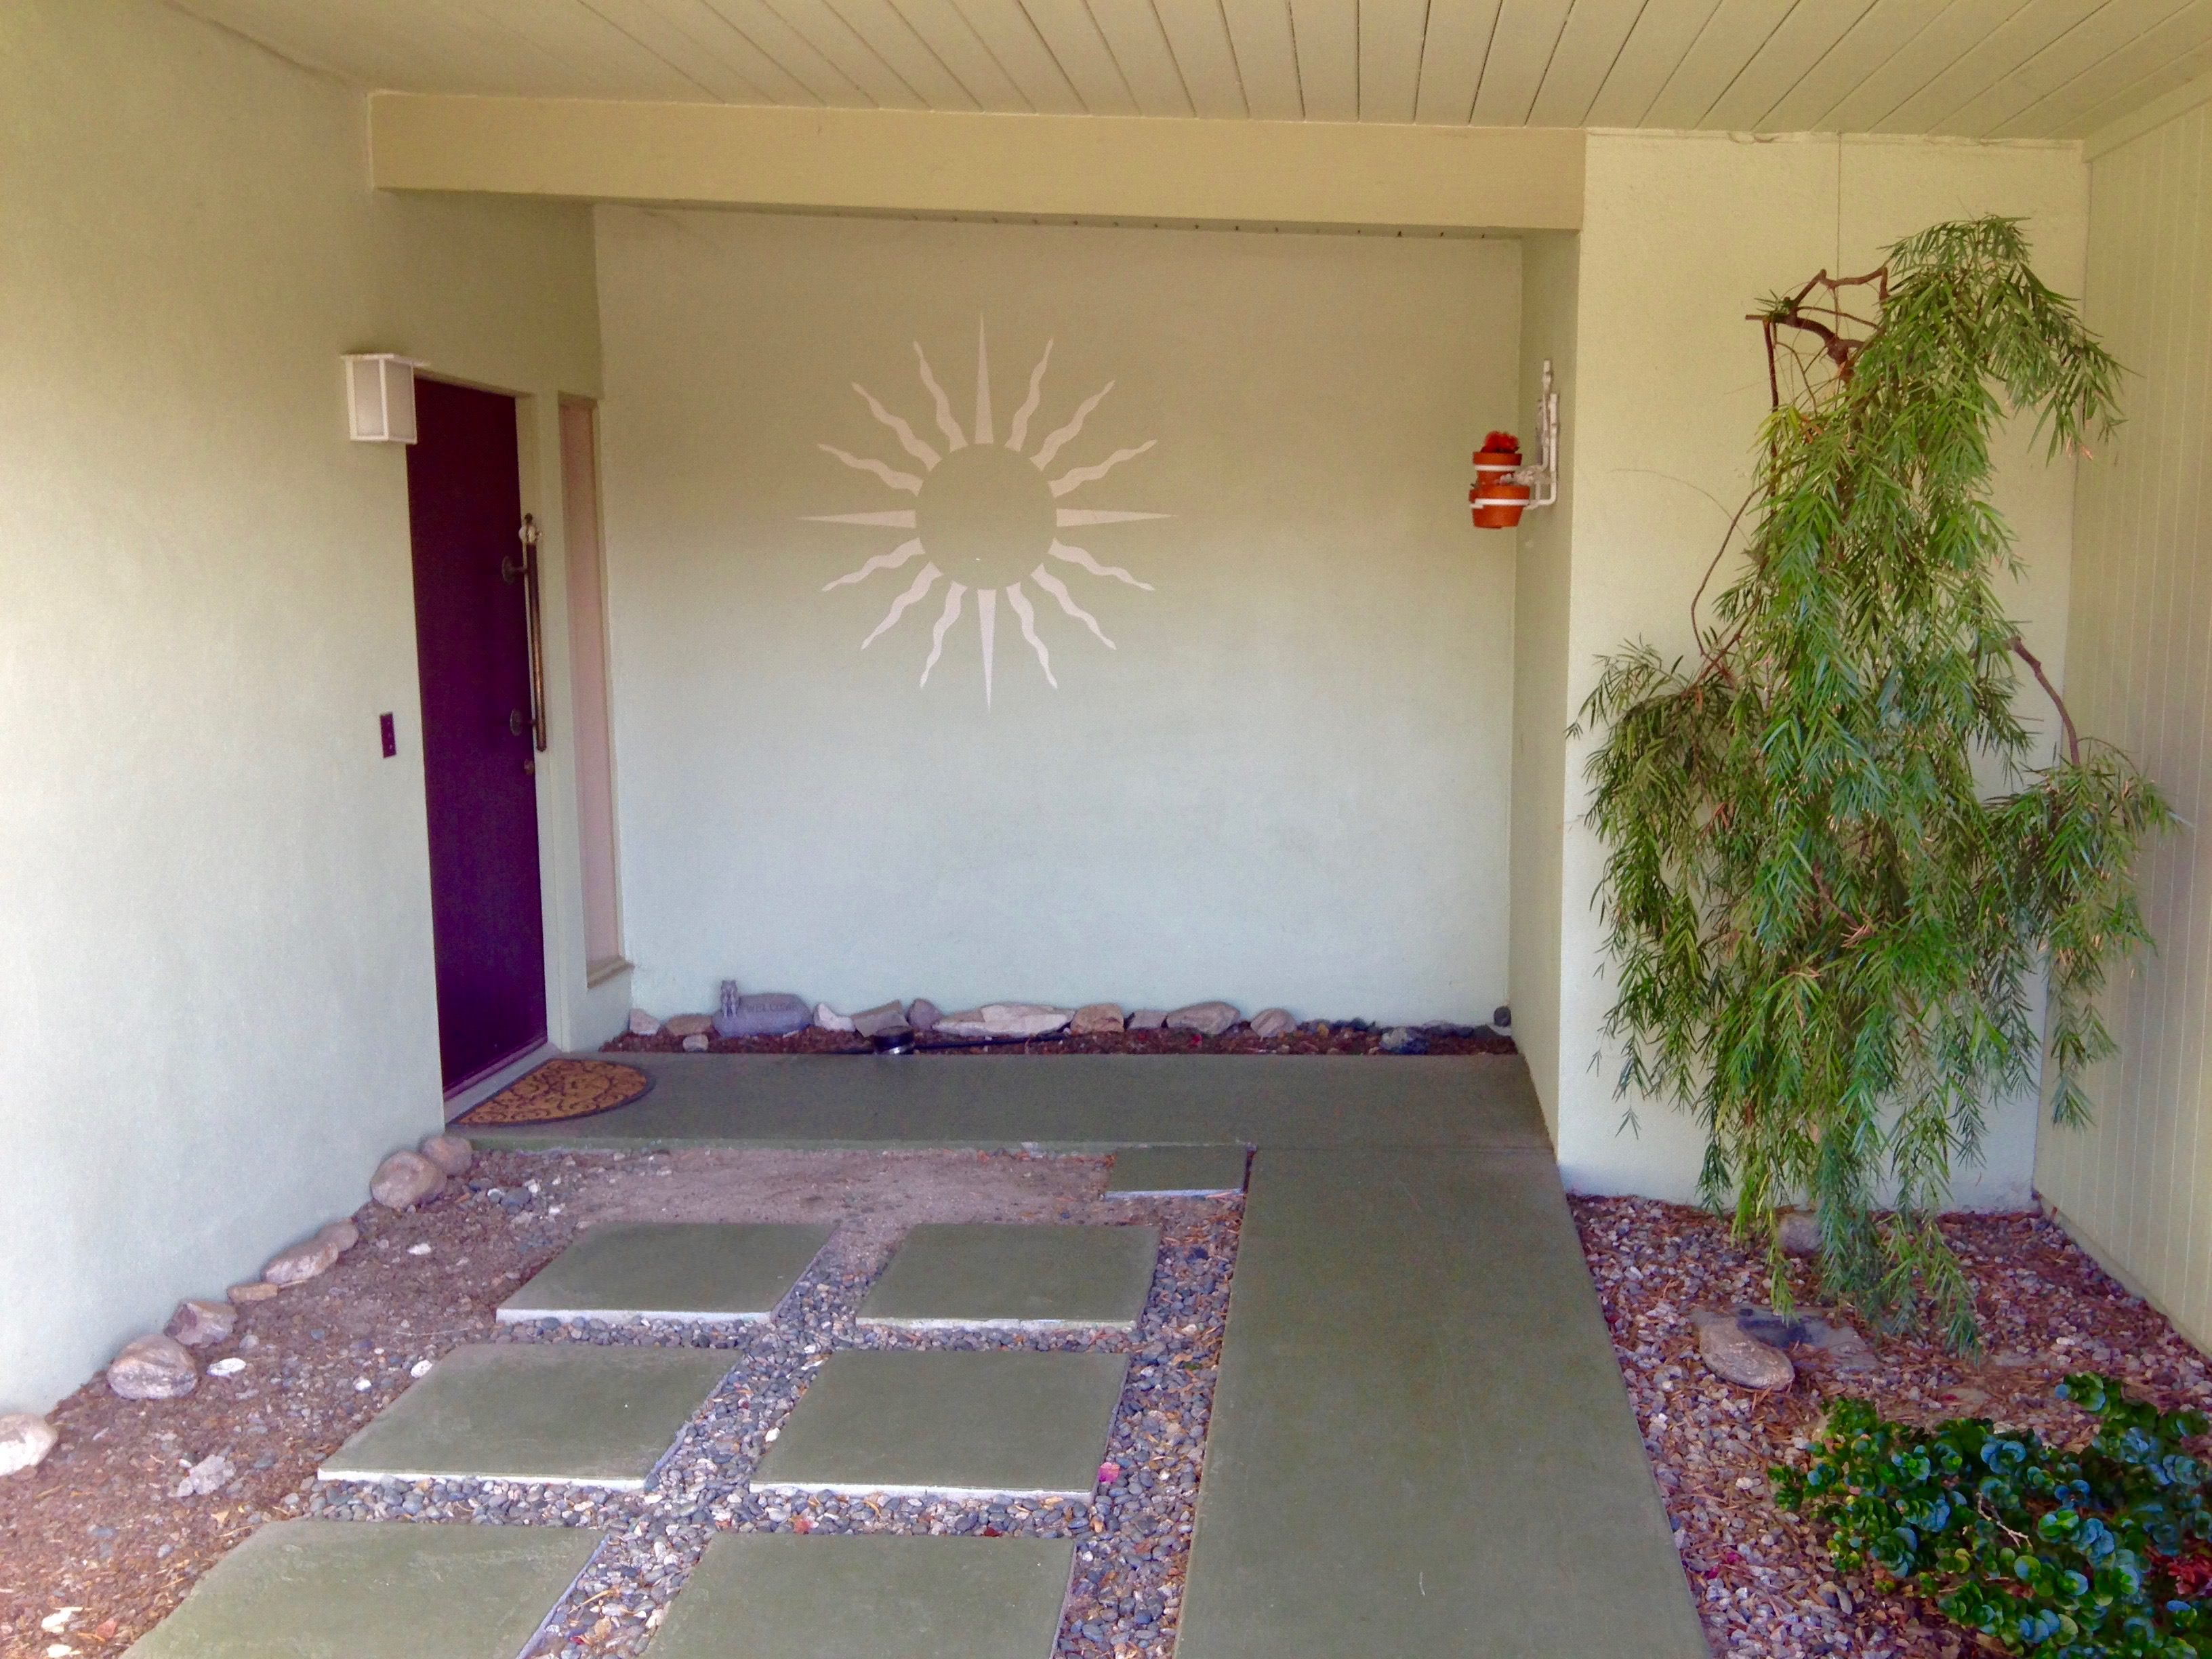 5 EXTERIOR COURTYARD BEFORE